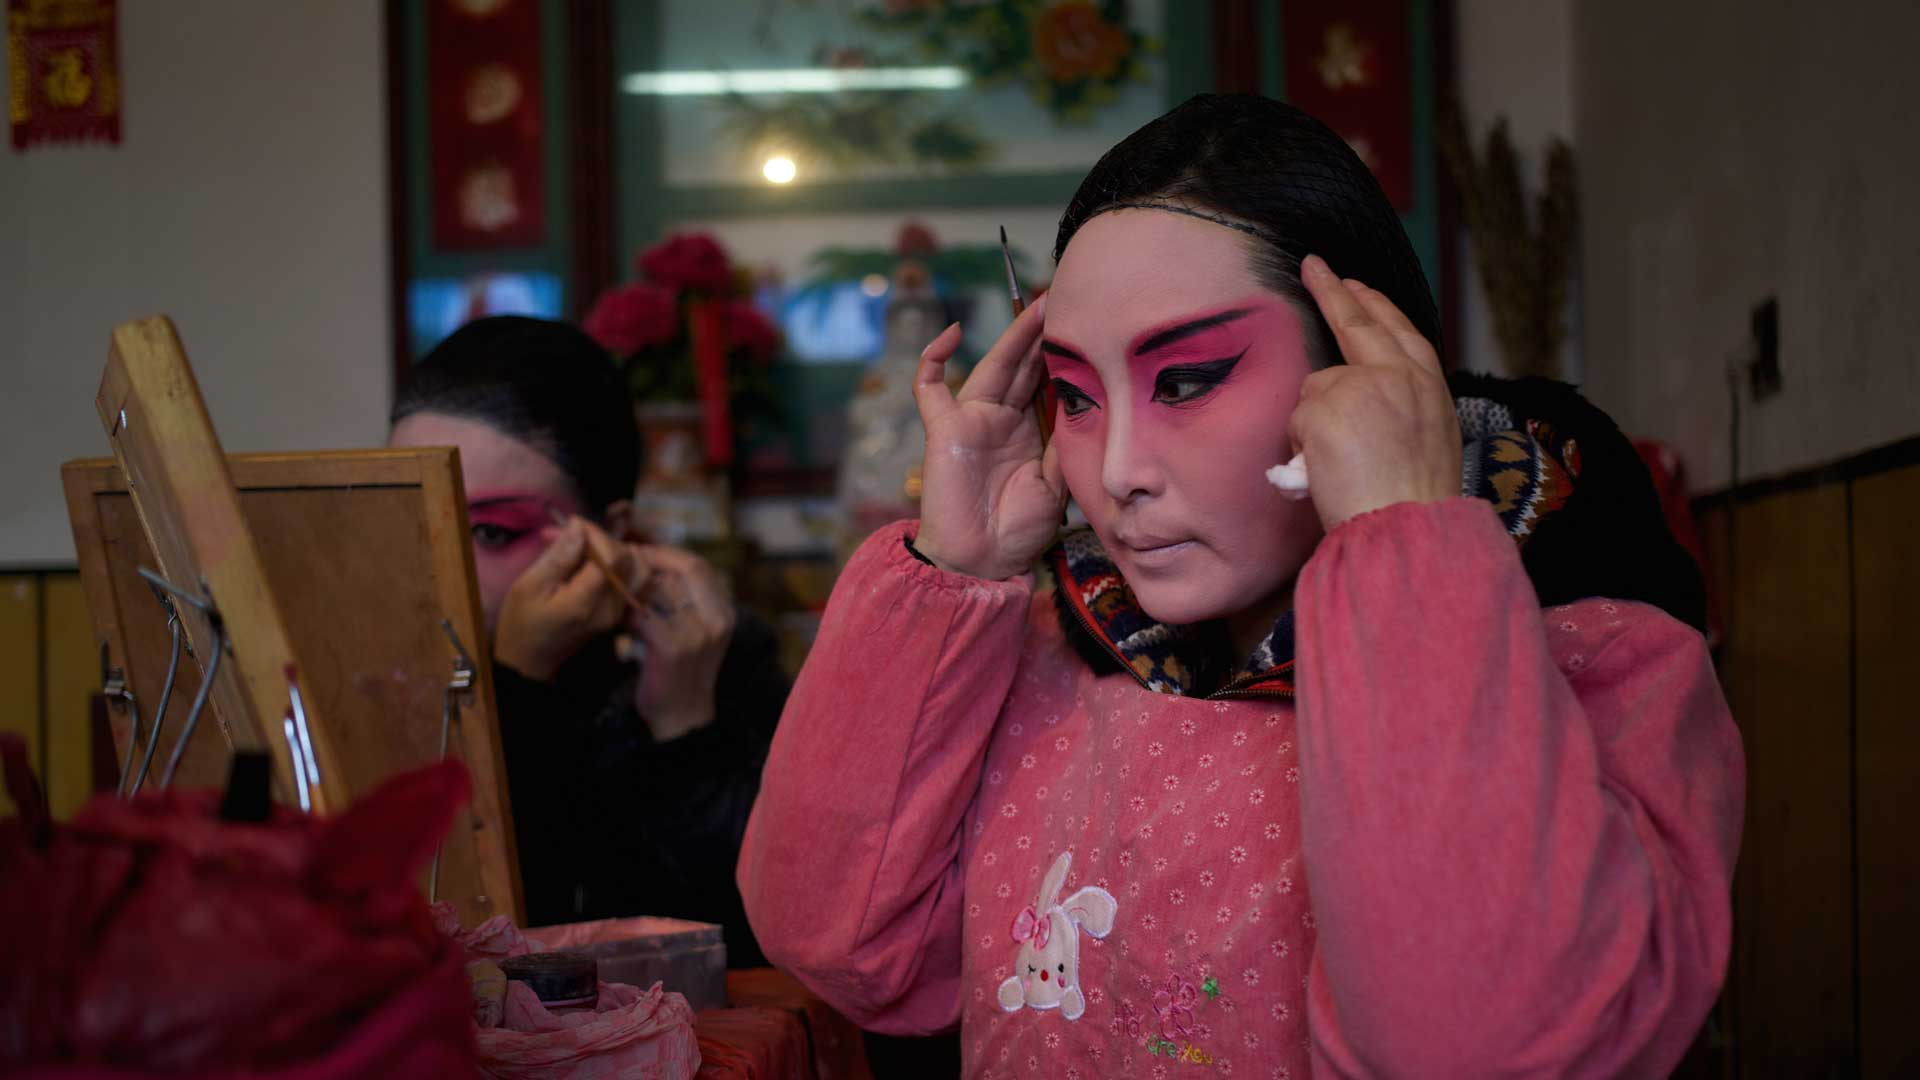 Actors preparing for an open-air theatrical performance in the village of Dinggou, Yangzhou